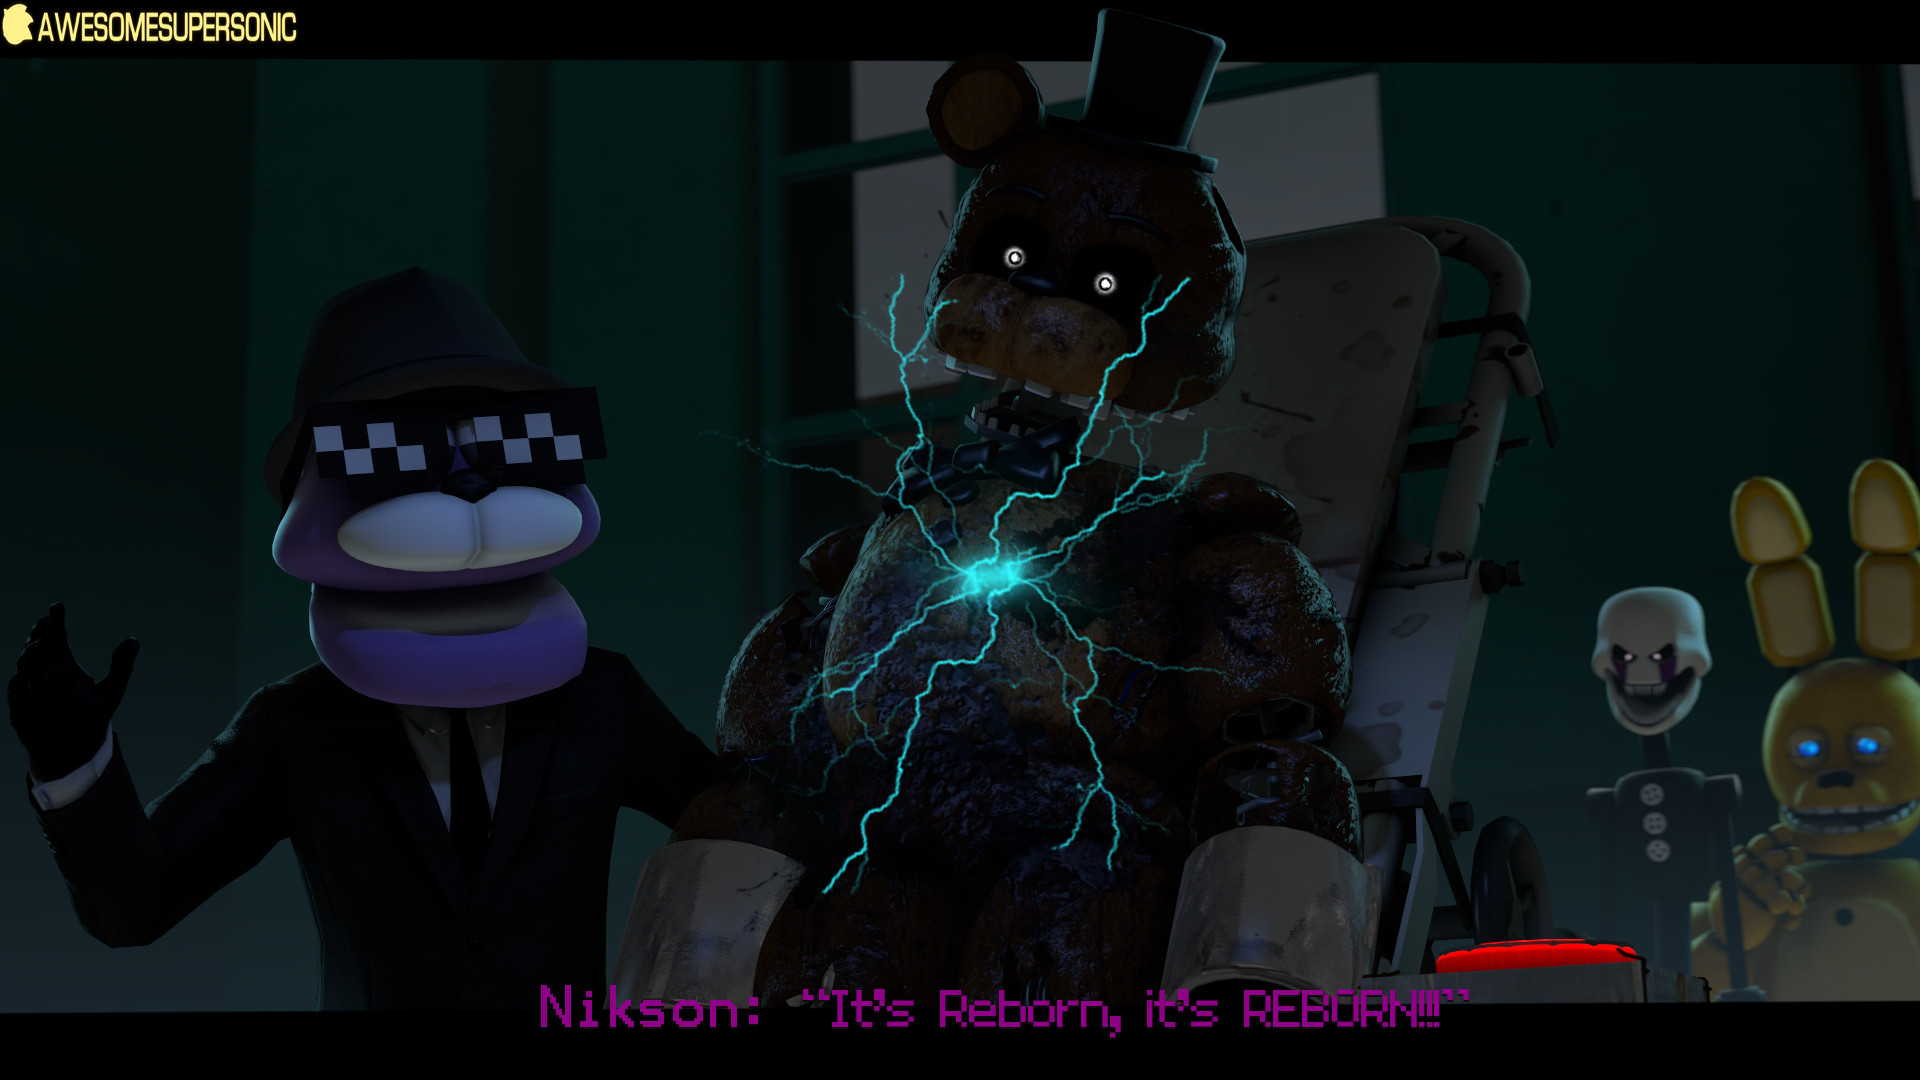 [SFM FNaF] It is reborn by AwesomeSuperSonic on DeviantArt